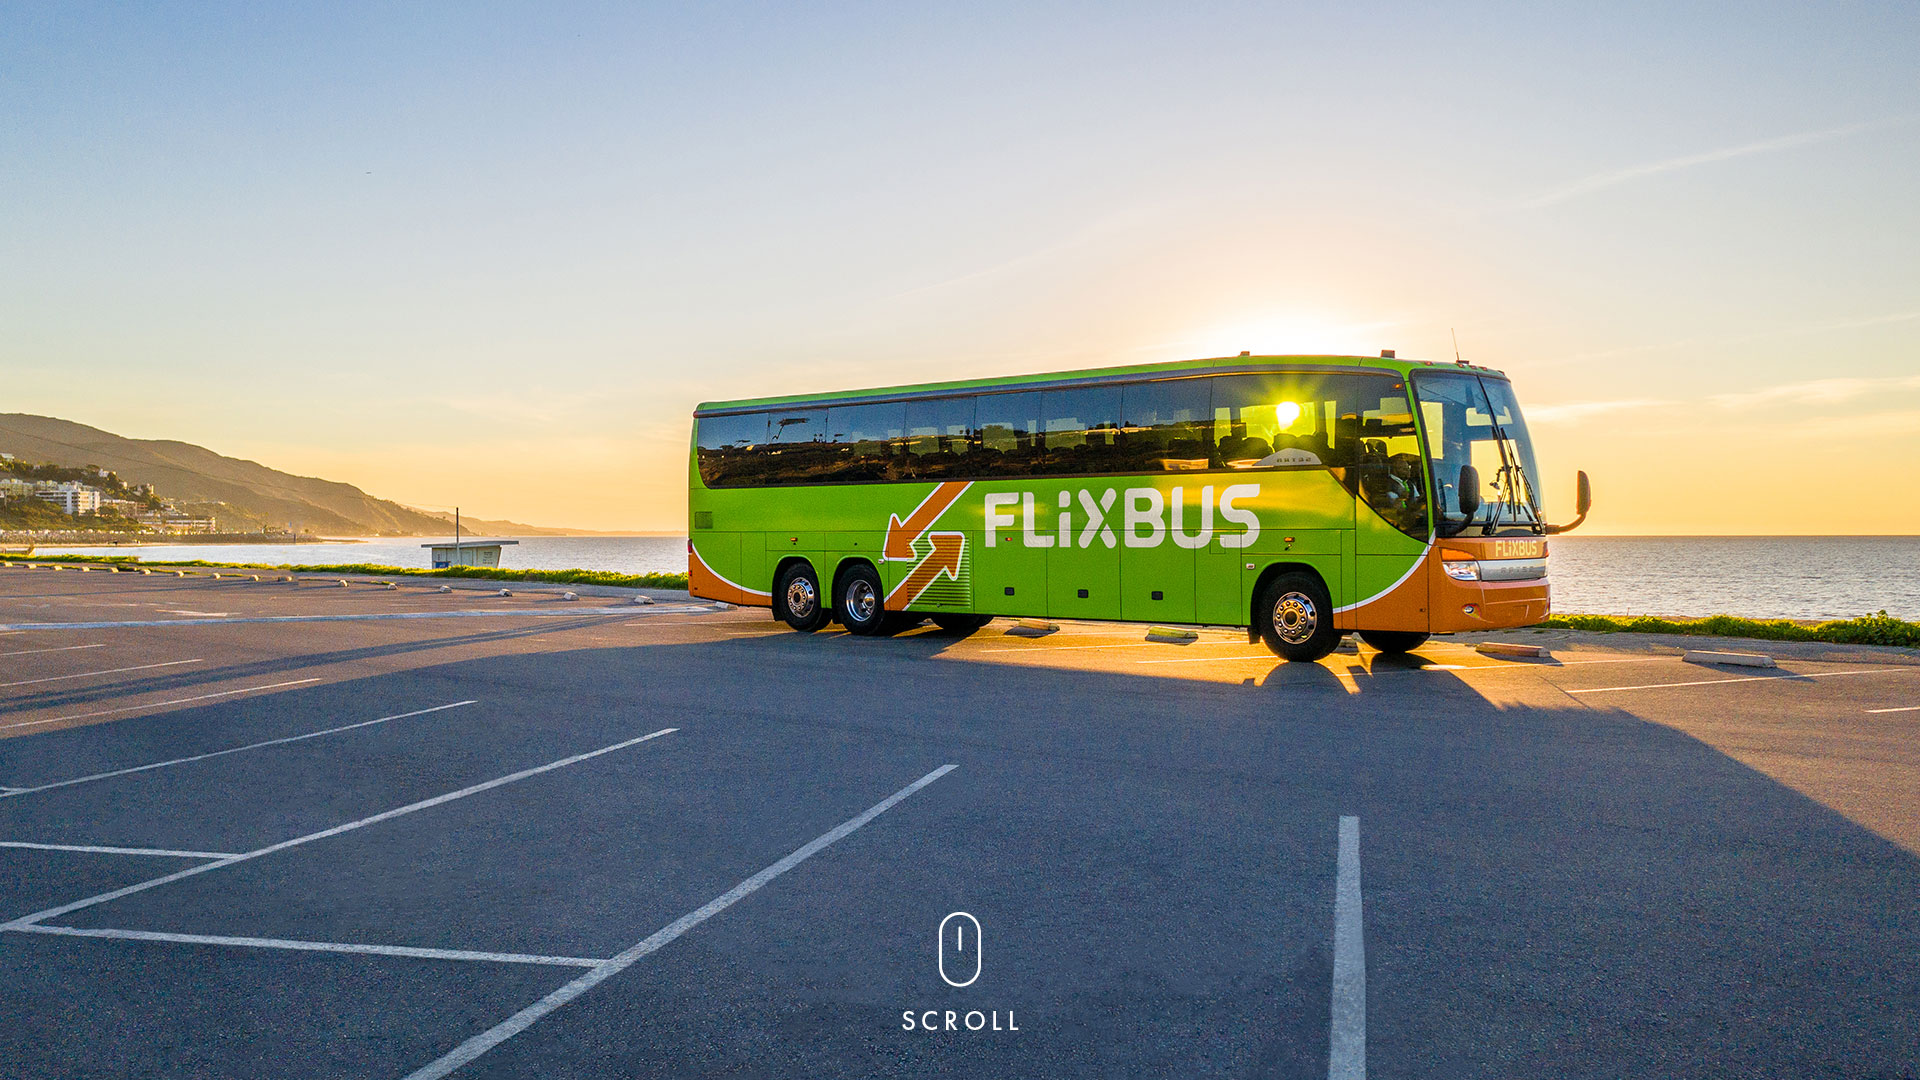 JO_FlixBus_HERO_Large